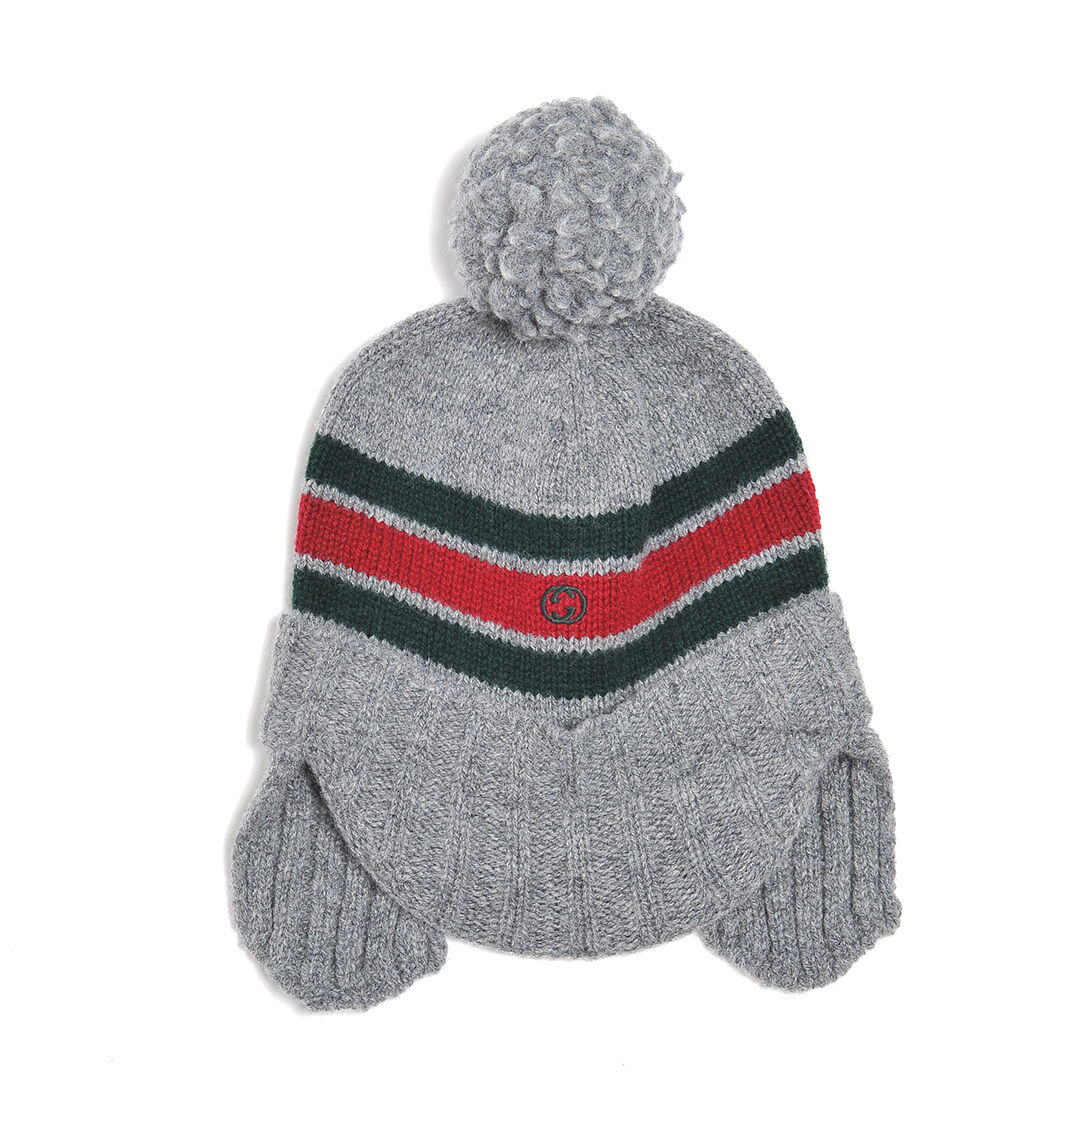 1f0dca296589c ... NWT NEW Gucci kids boys navy or gray wool knit hat ear flaps red web S  ...